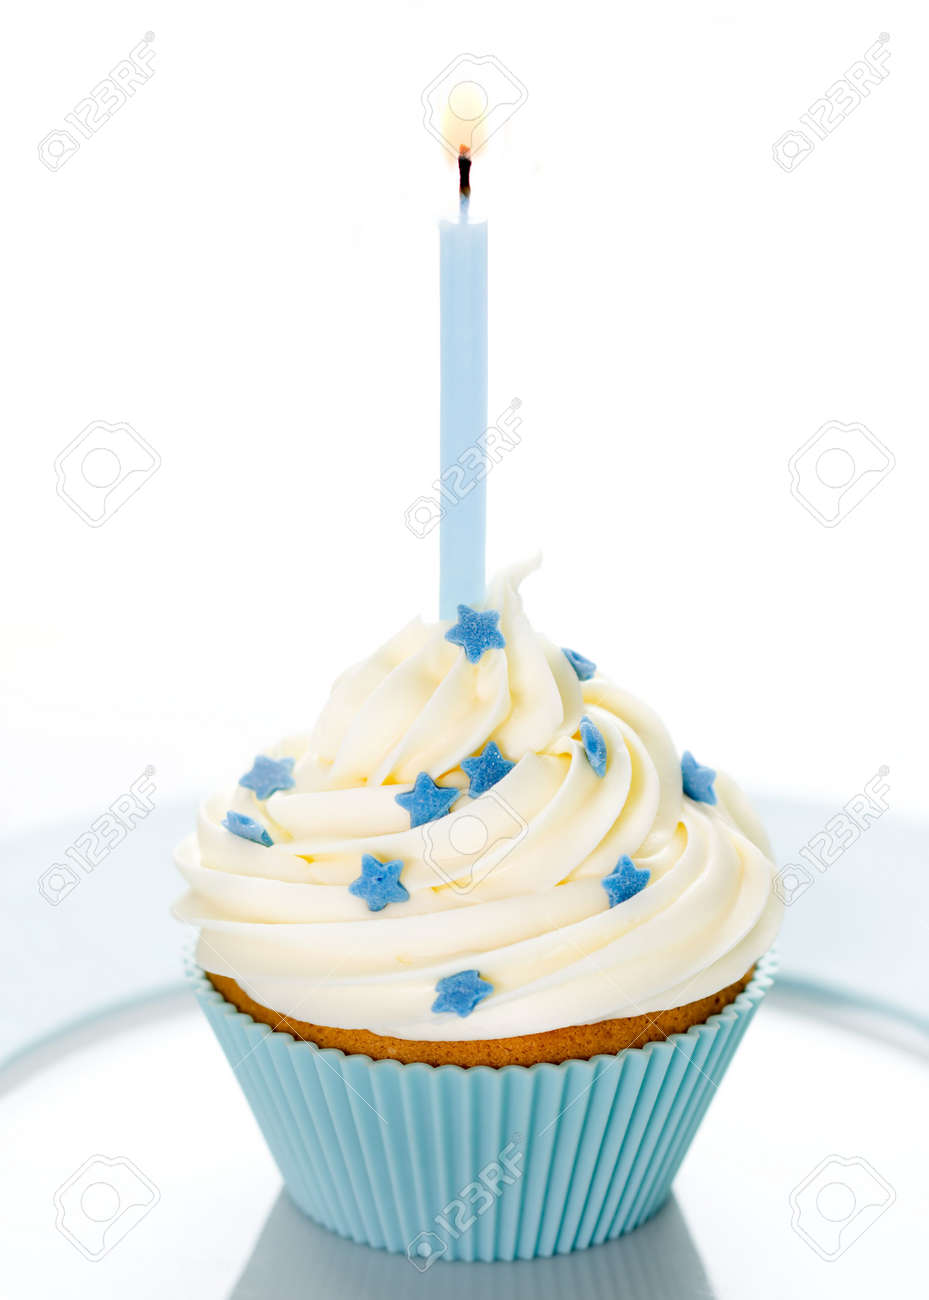 Blue Birthday Cupcake On A White Plate Stock Photo Picture And